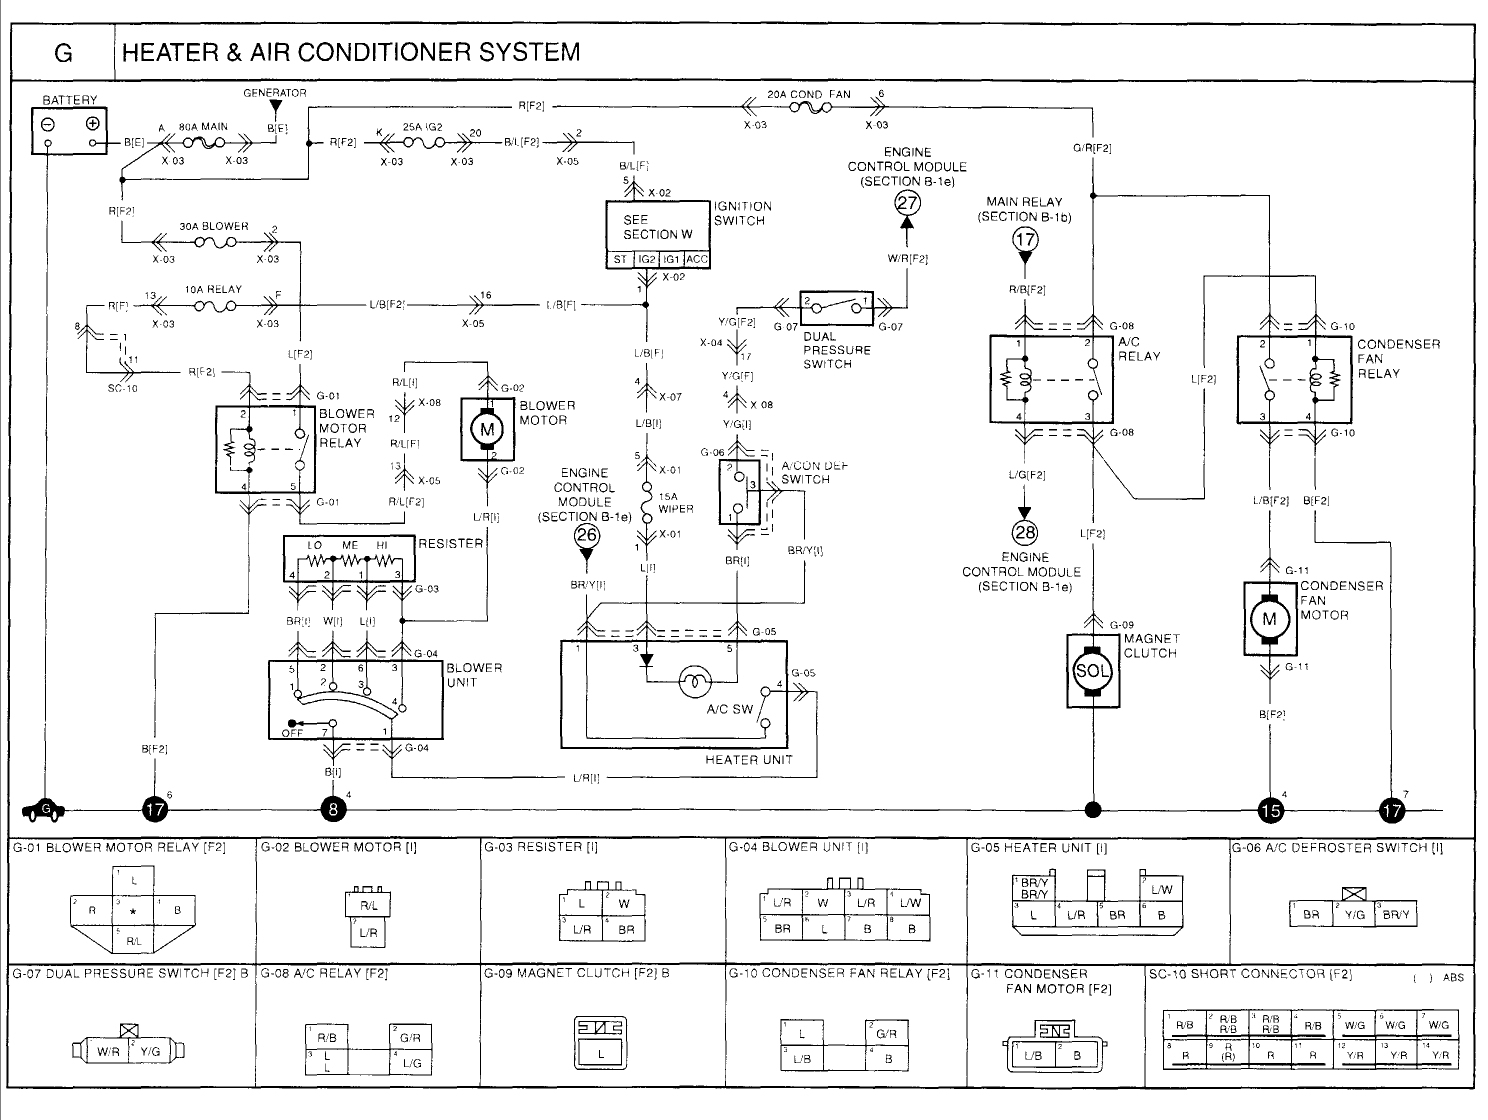 Kia Spectra Heater Blower Motor And The Resistor Sportage Wiring Rio - Blower Motor Wiring Diagram Manual